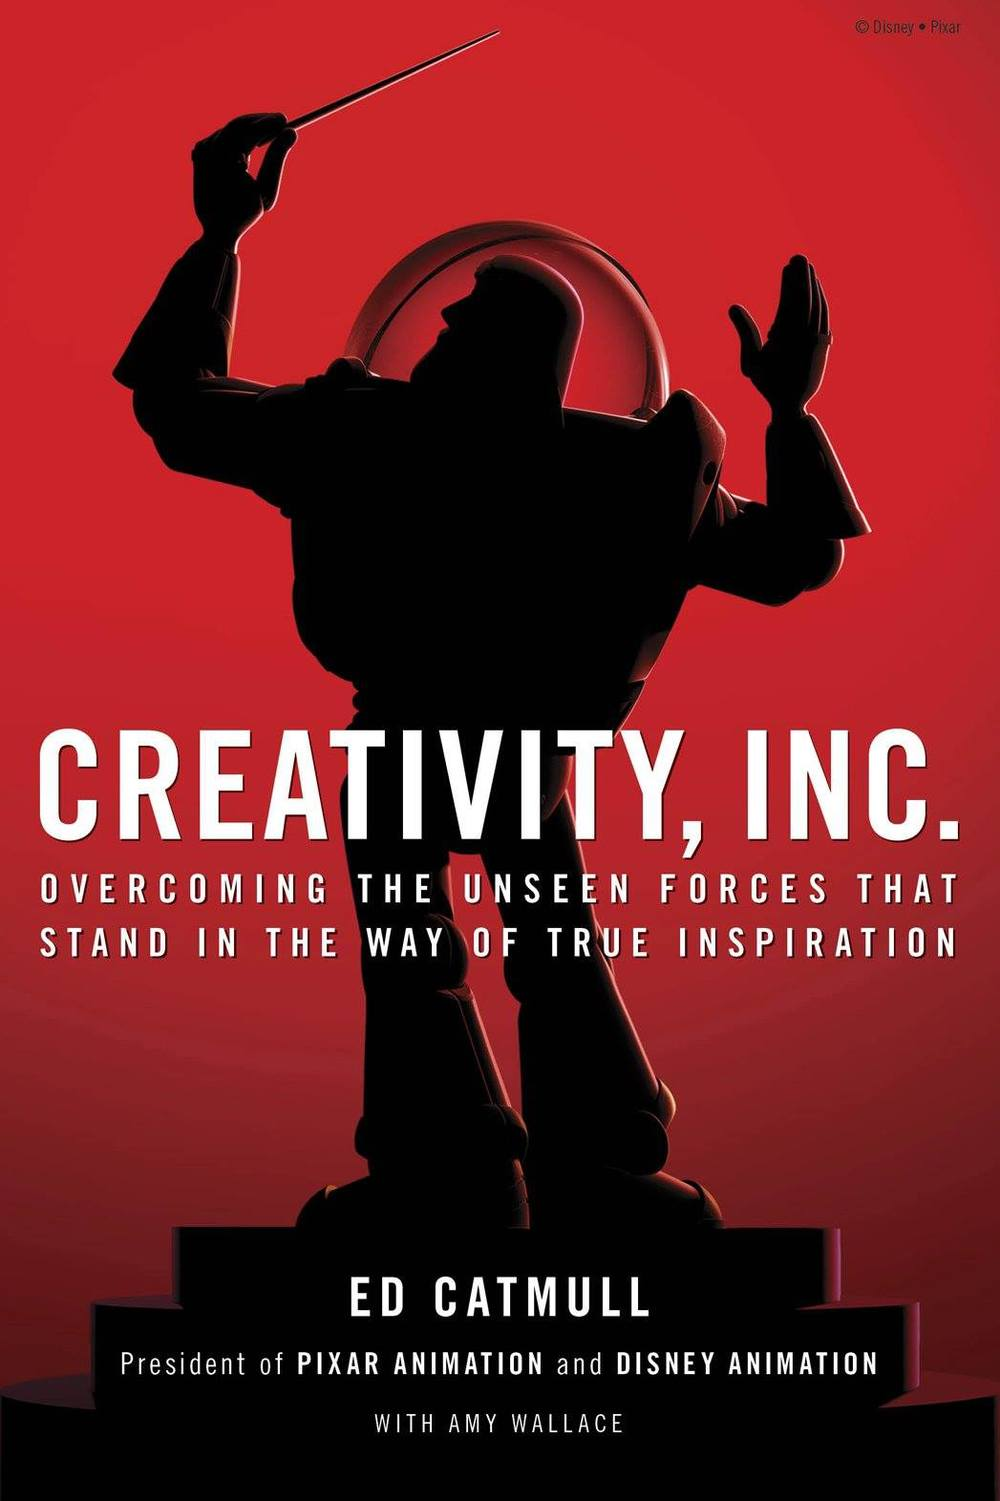 Creativity, Inc: Overcoming the Unseen Forces That Stand in the Way of True Inspiration